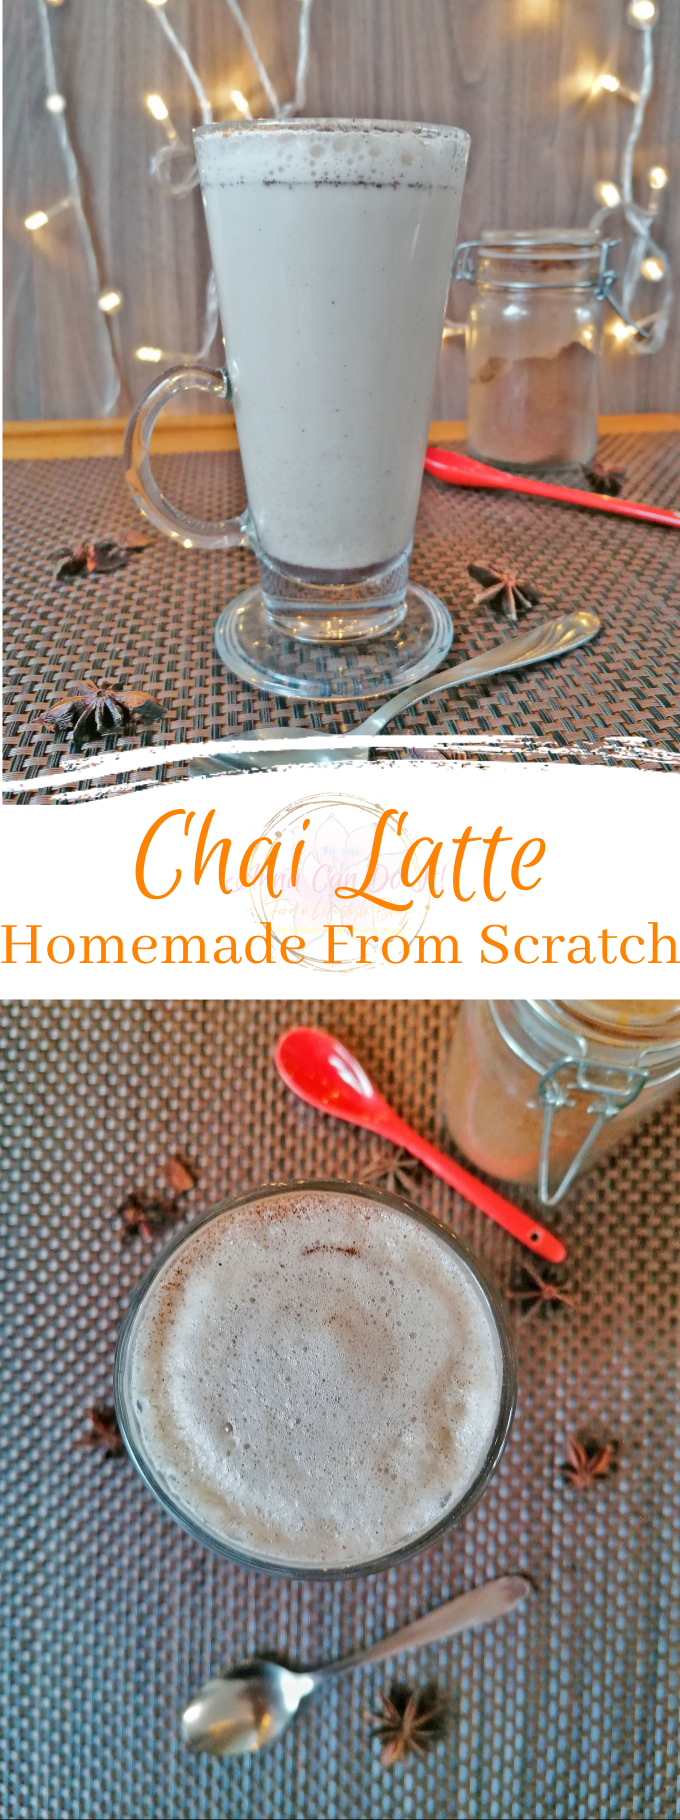 Chai Latte - Homemade From Scratch - Anna Can Do It!